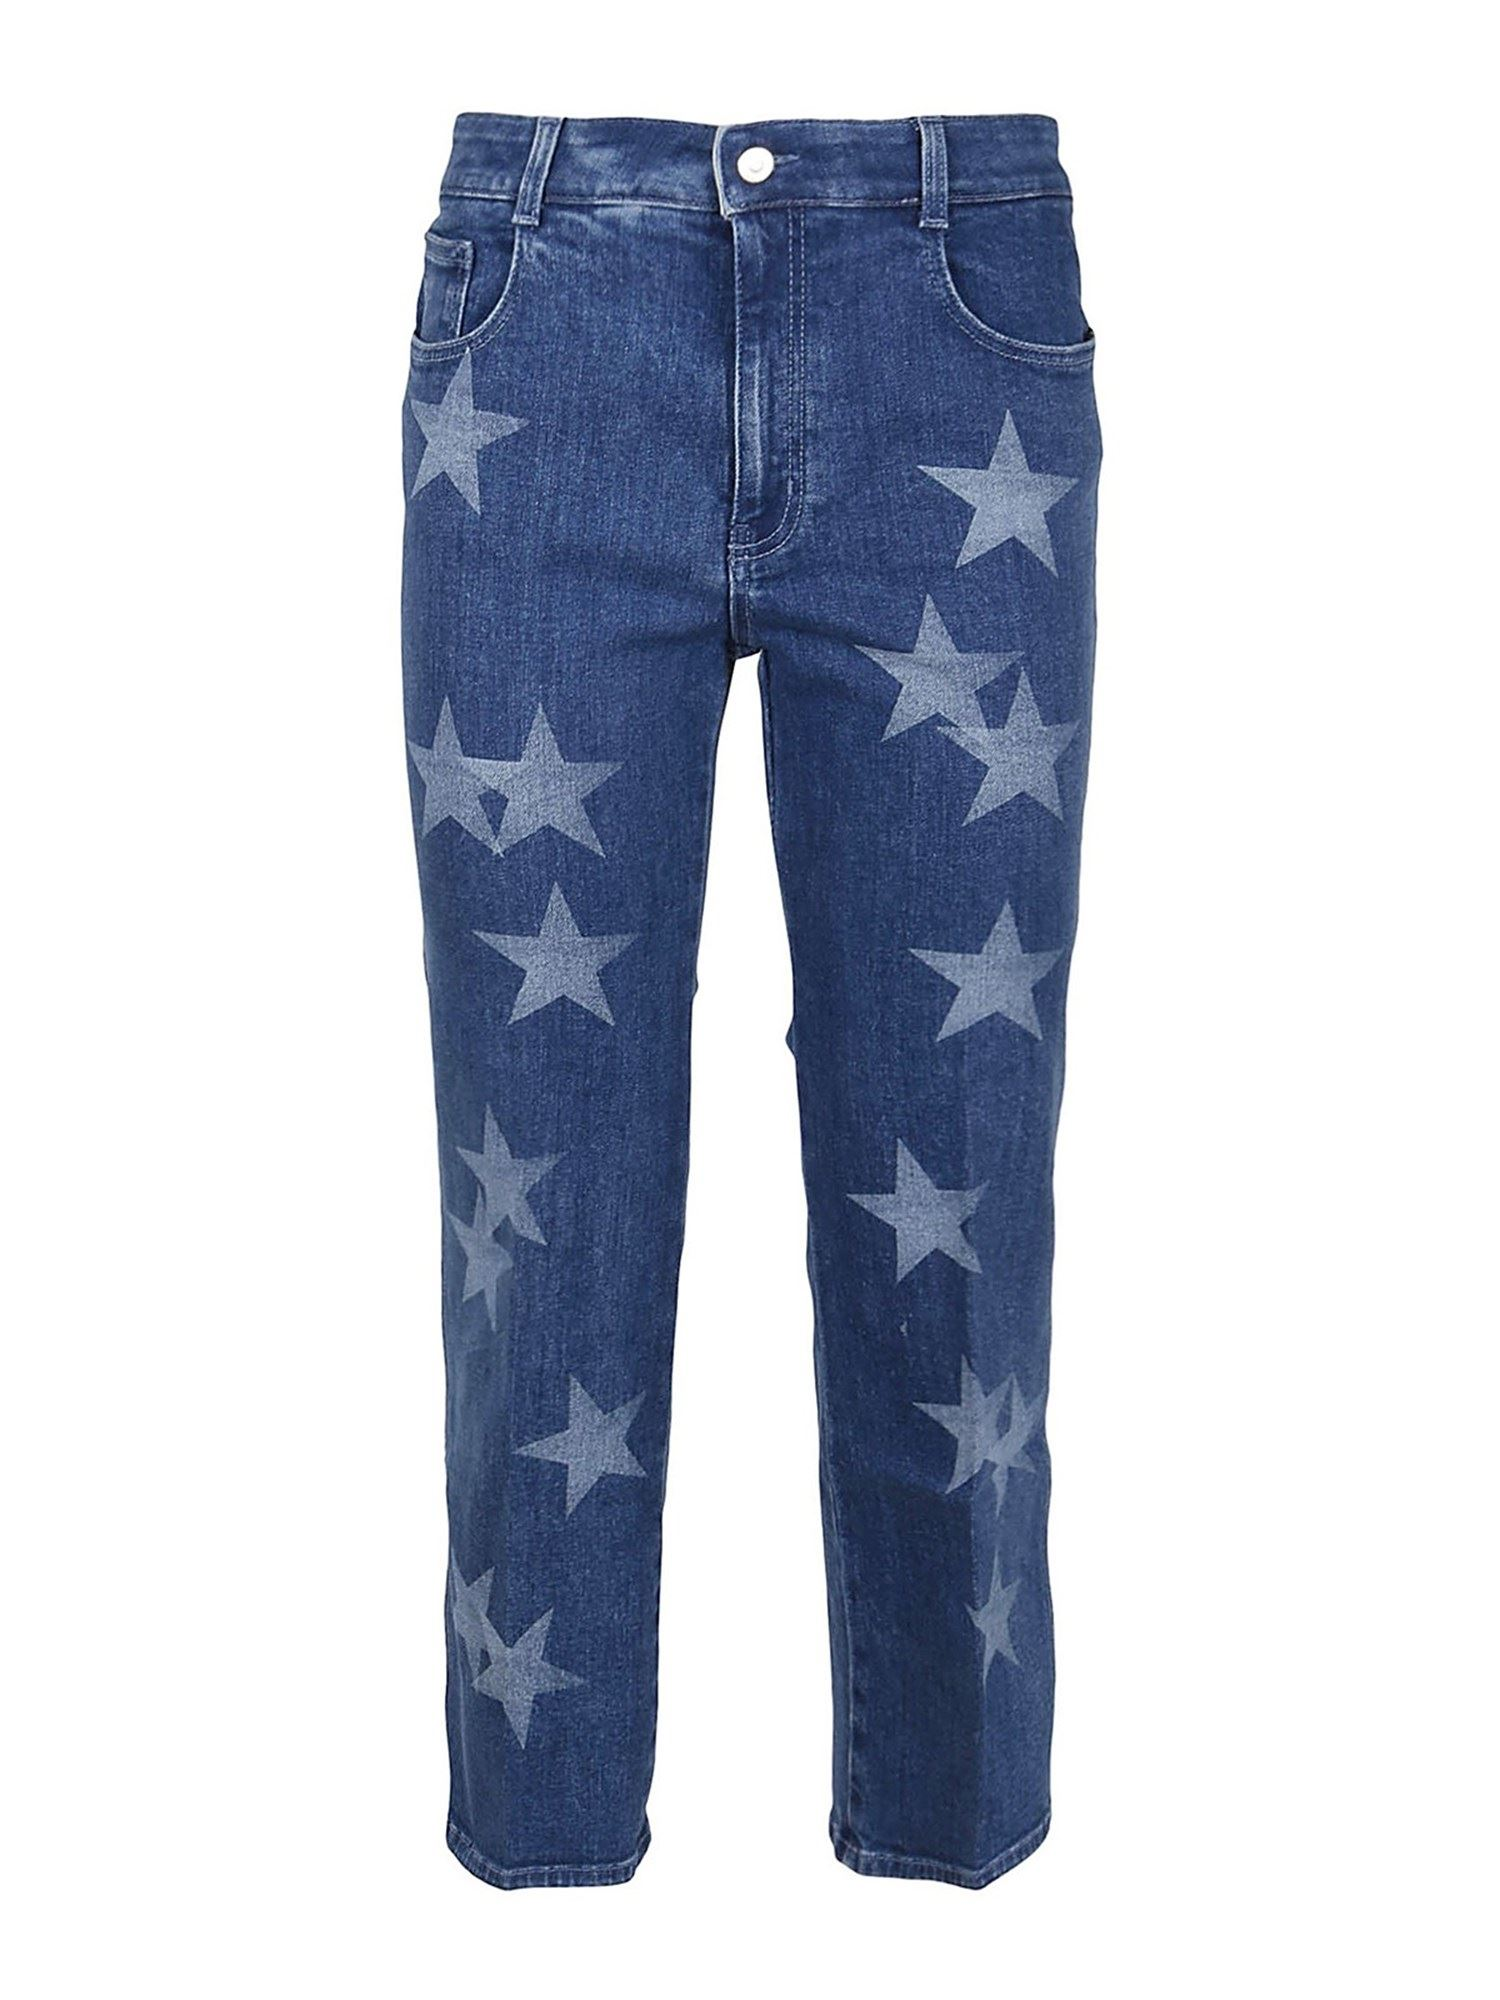 Stella Mccartney STELLA MCCARTNEY STAR PRINT STRETCH JEANS IN BLUE